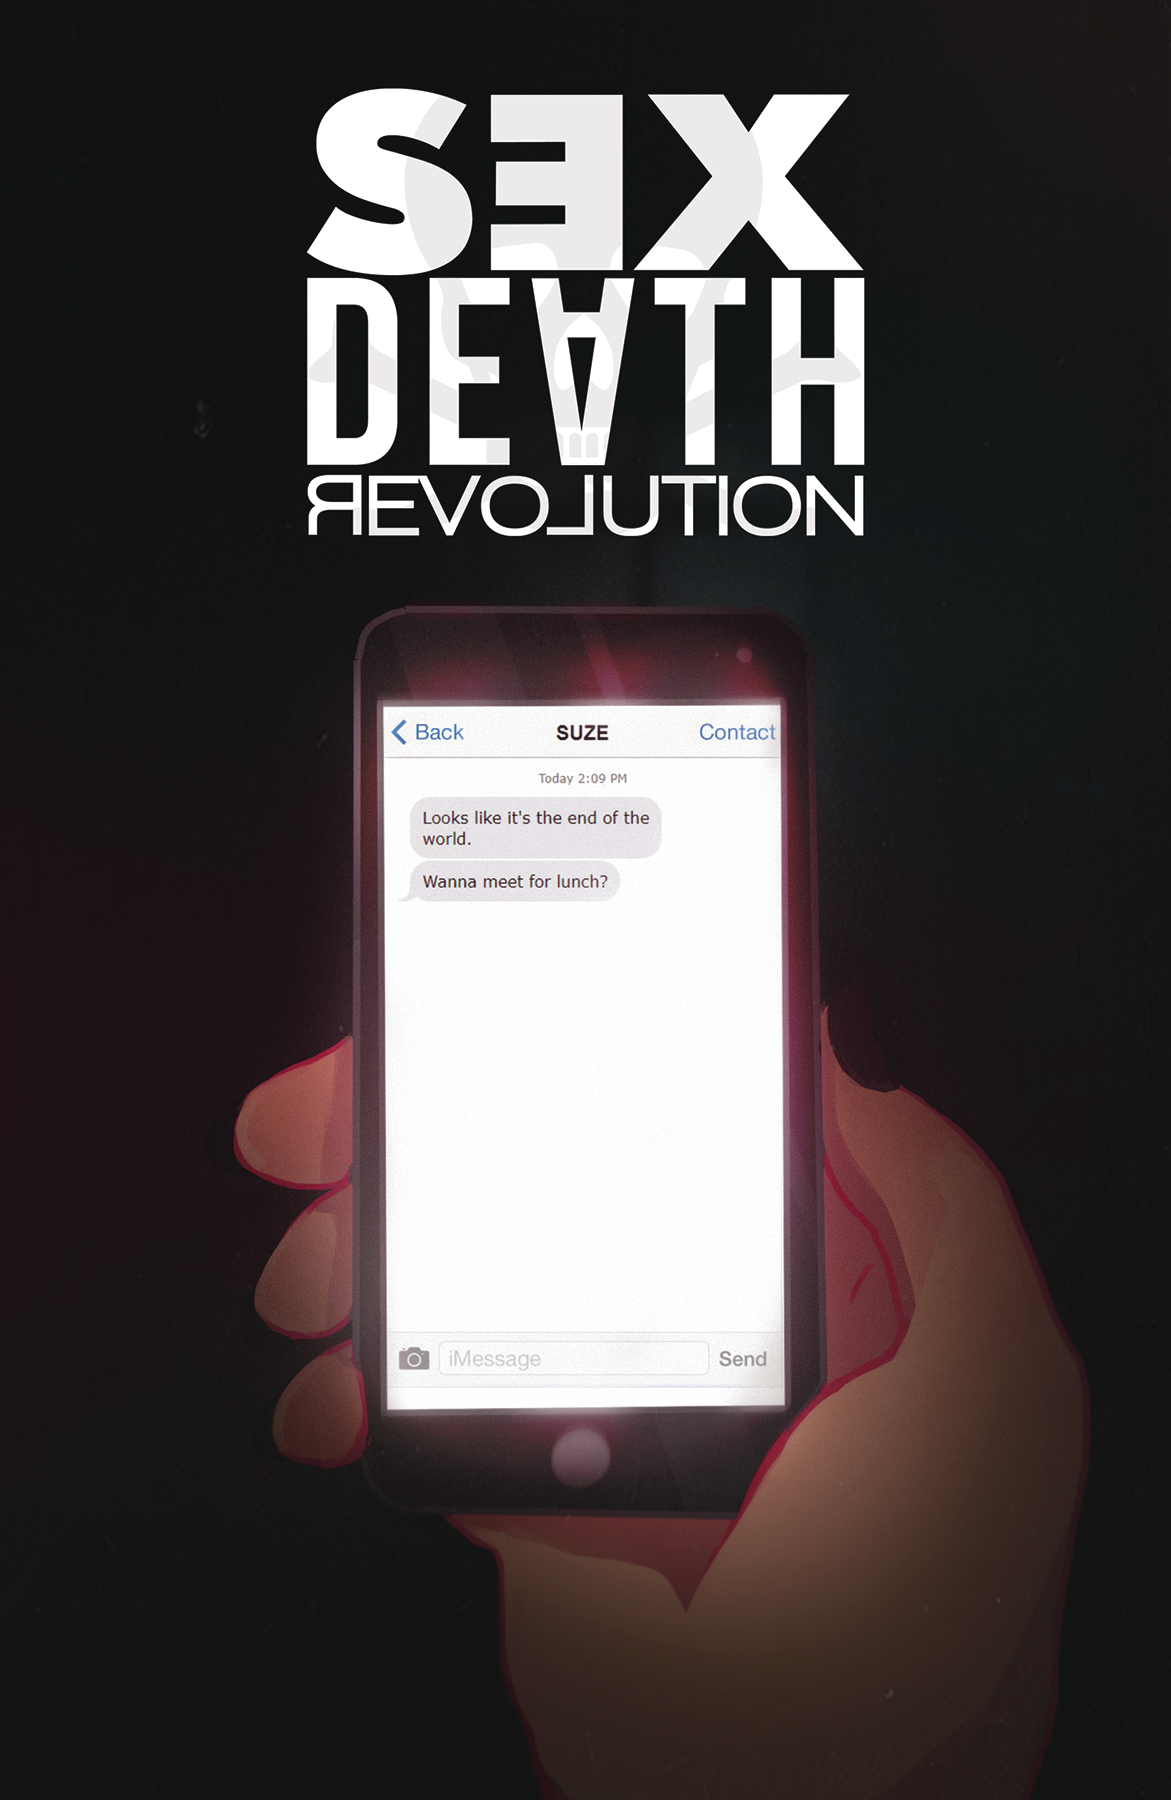 SEX DEATH REVOLUTION #4 (MR)